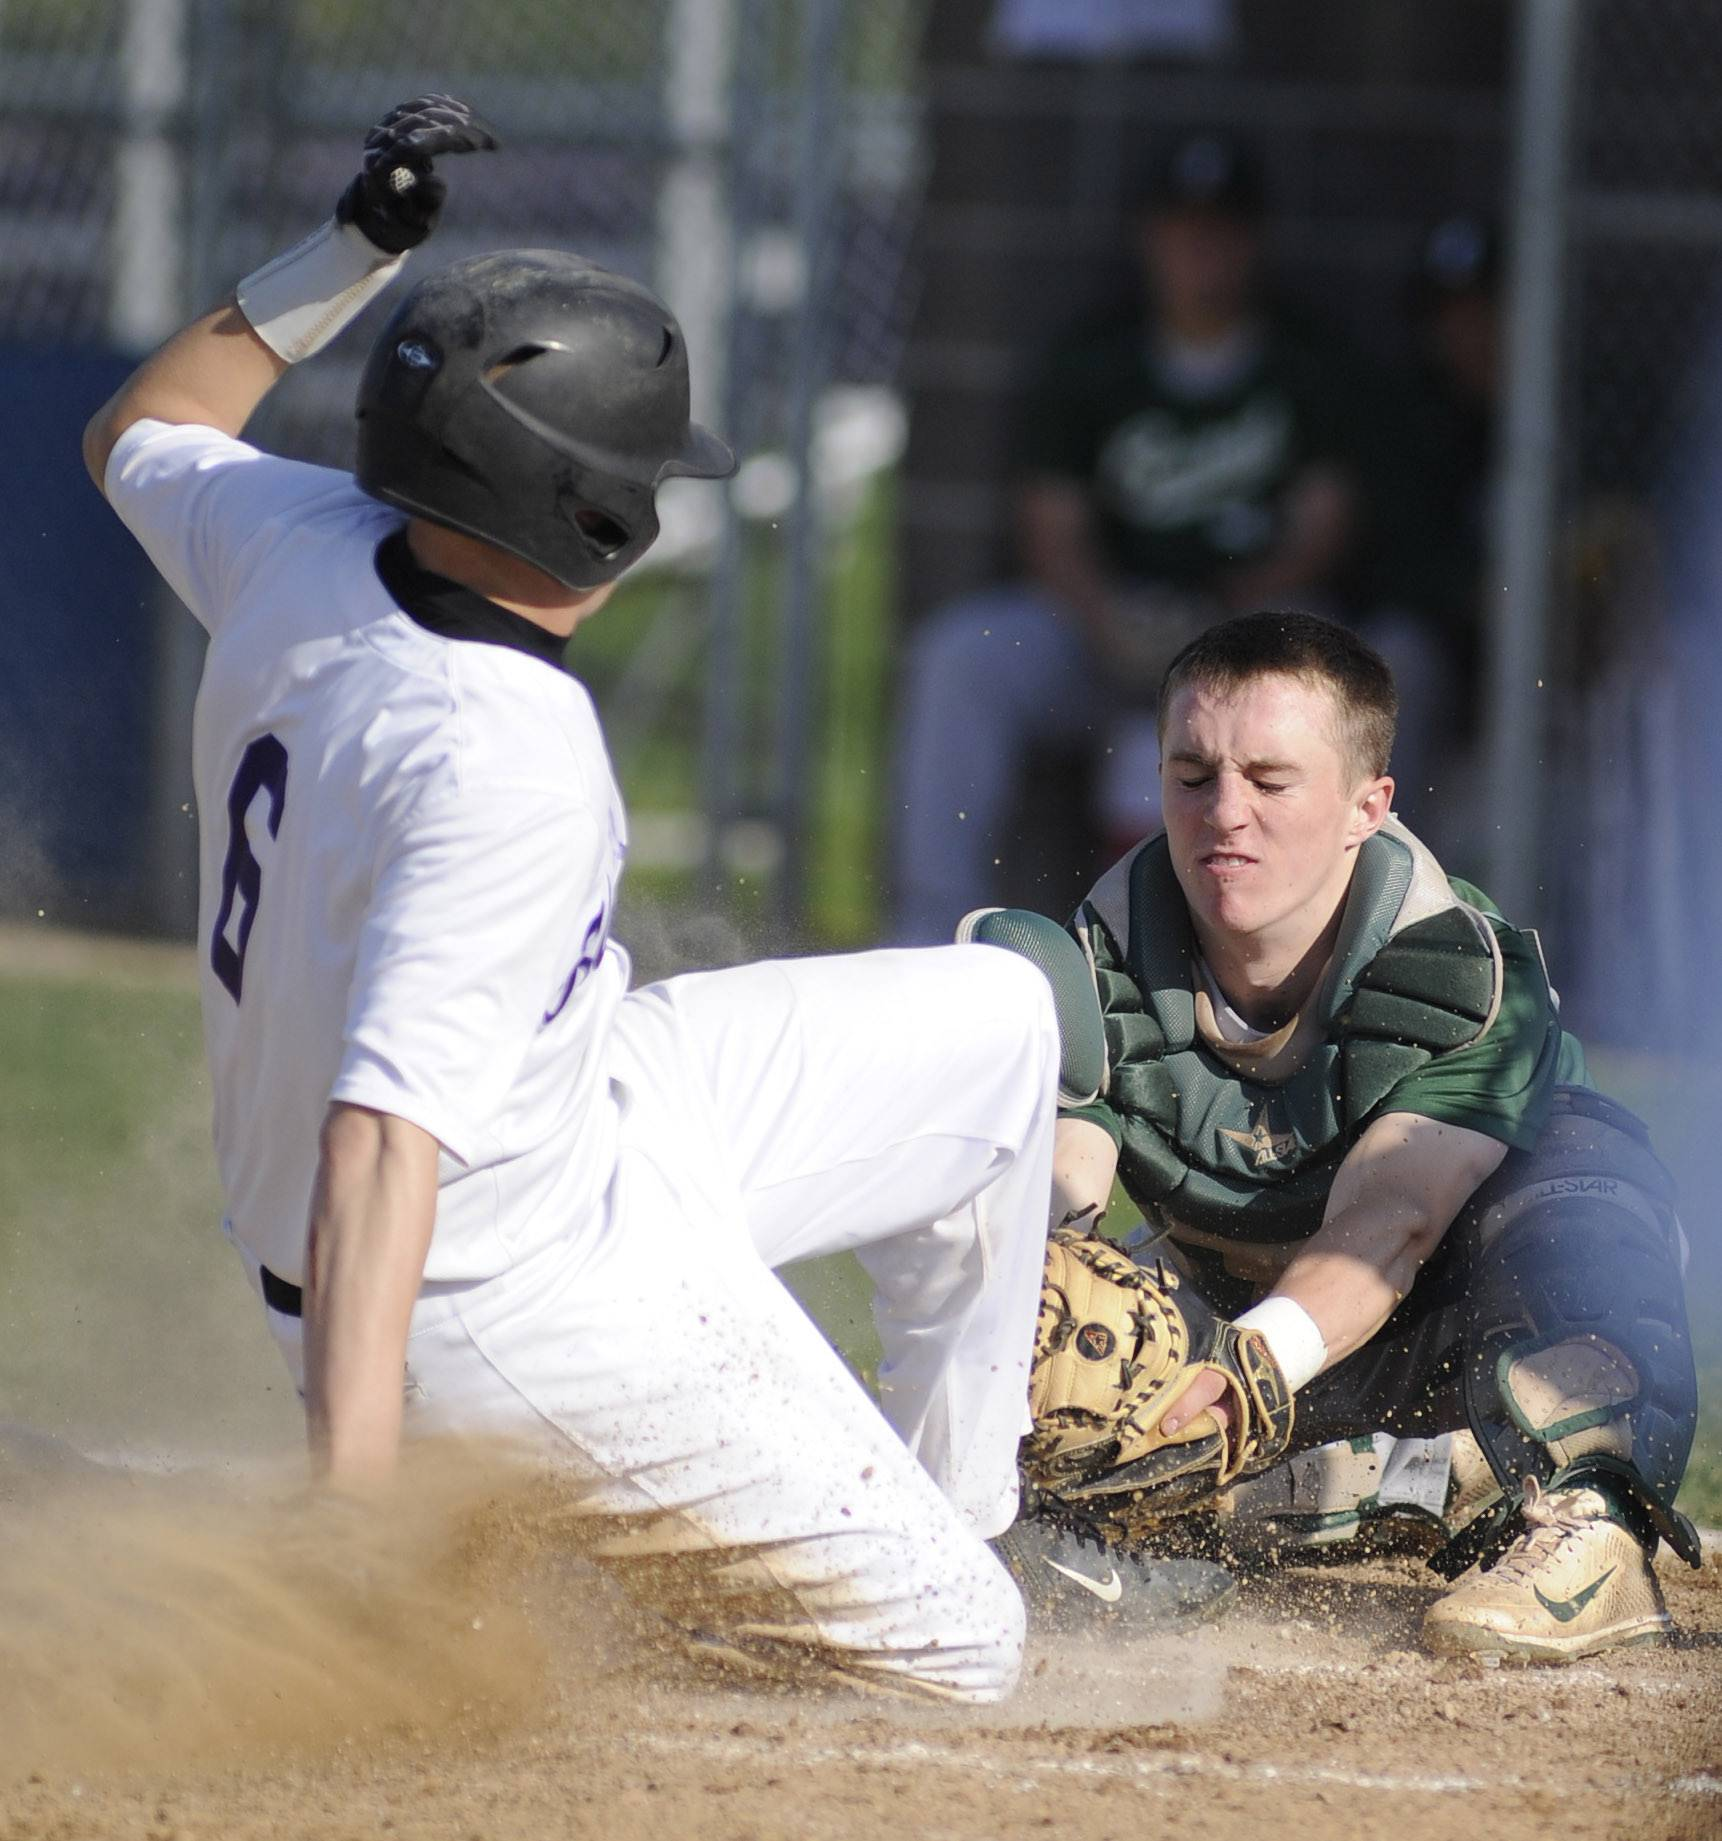 Baseball: Scouting Lake County